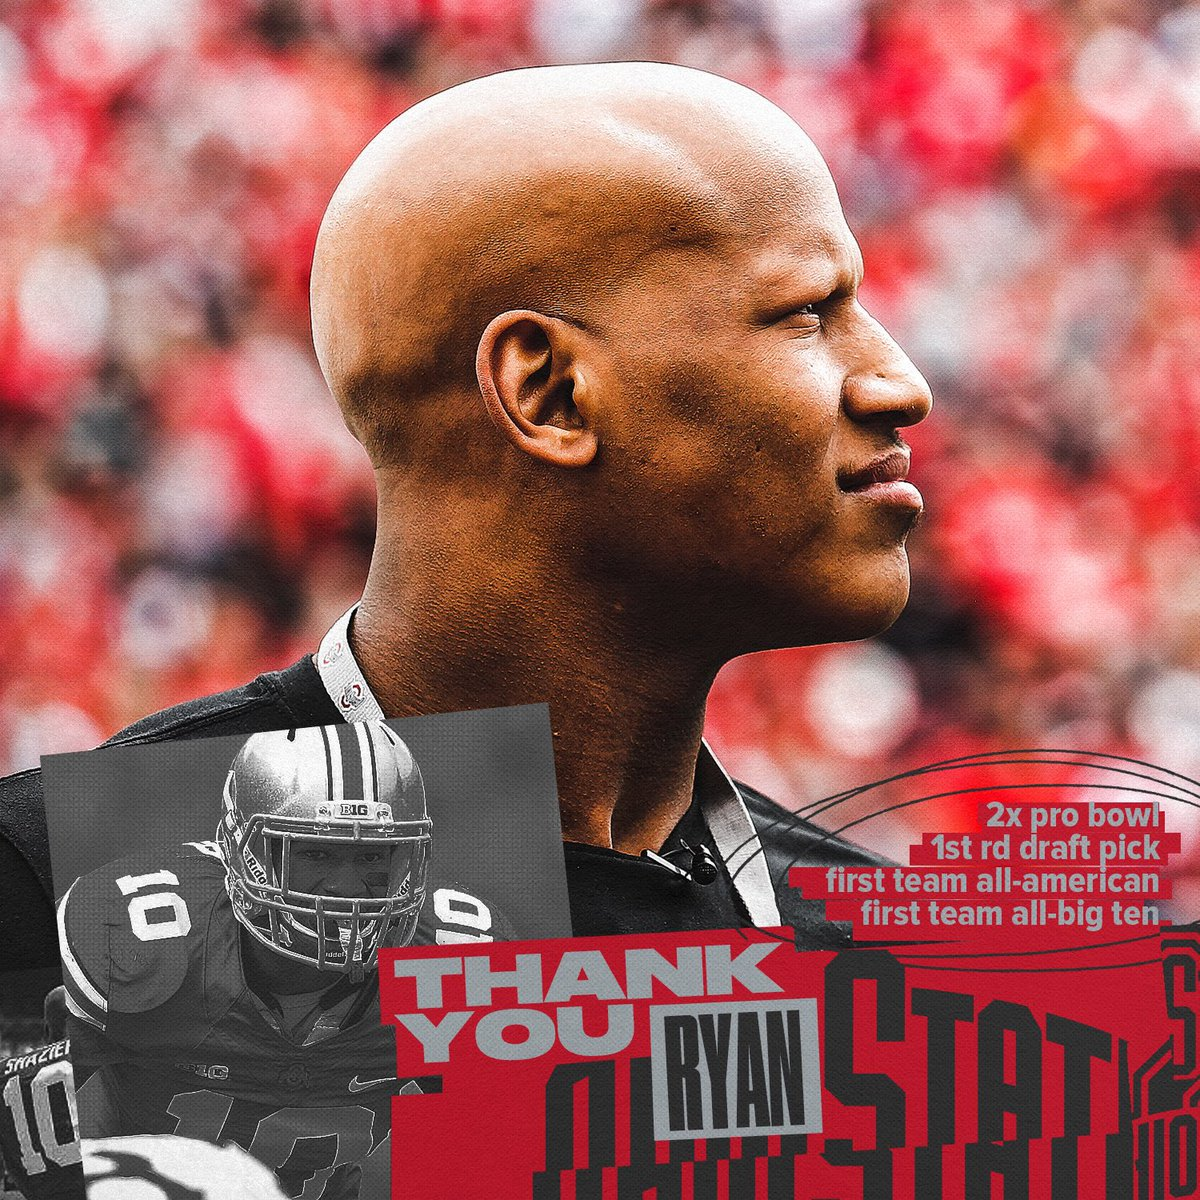 Thank you for everything, @RyanShazier. https://t.co/IQ8SjPw62A